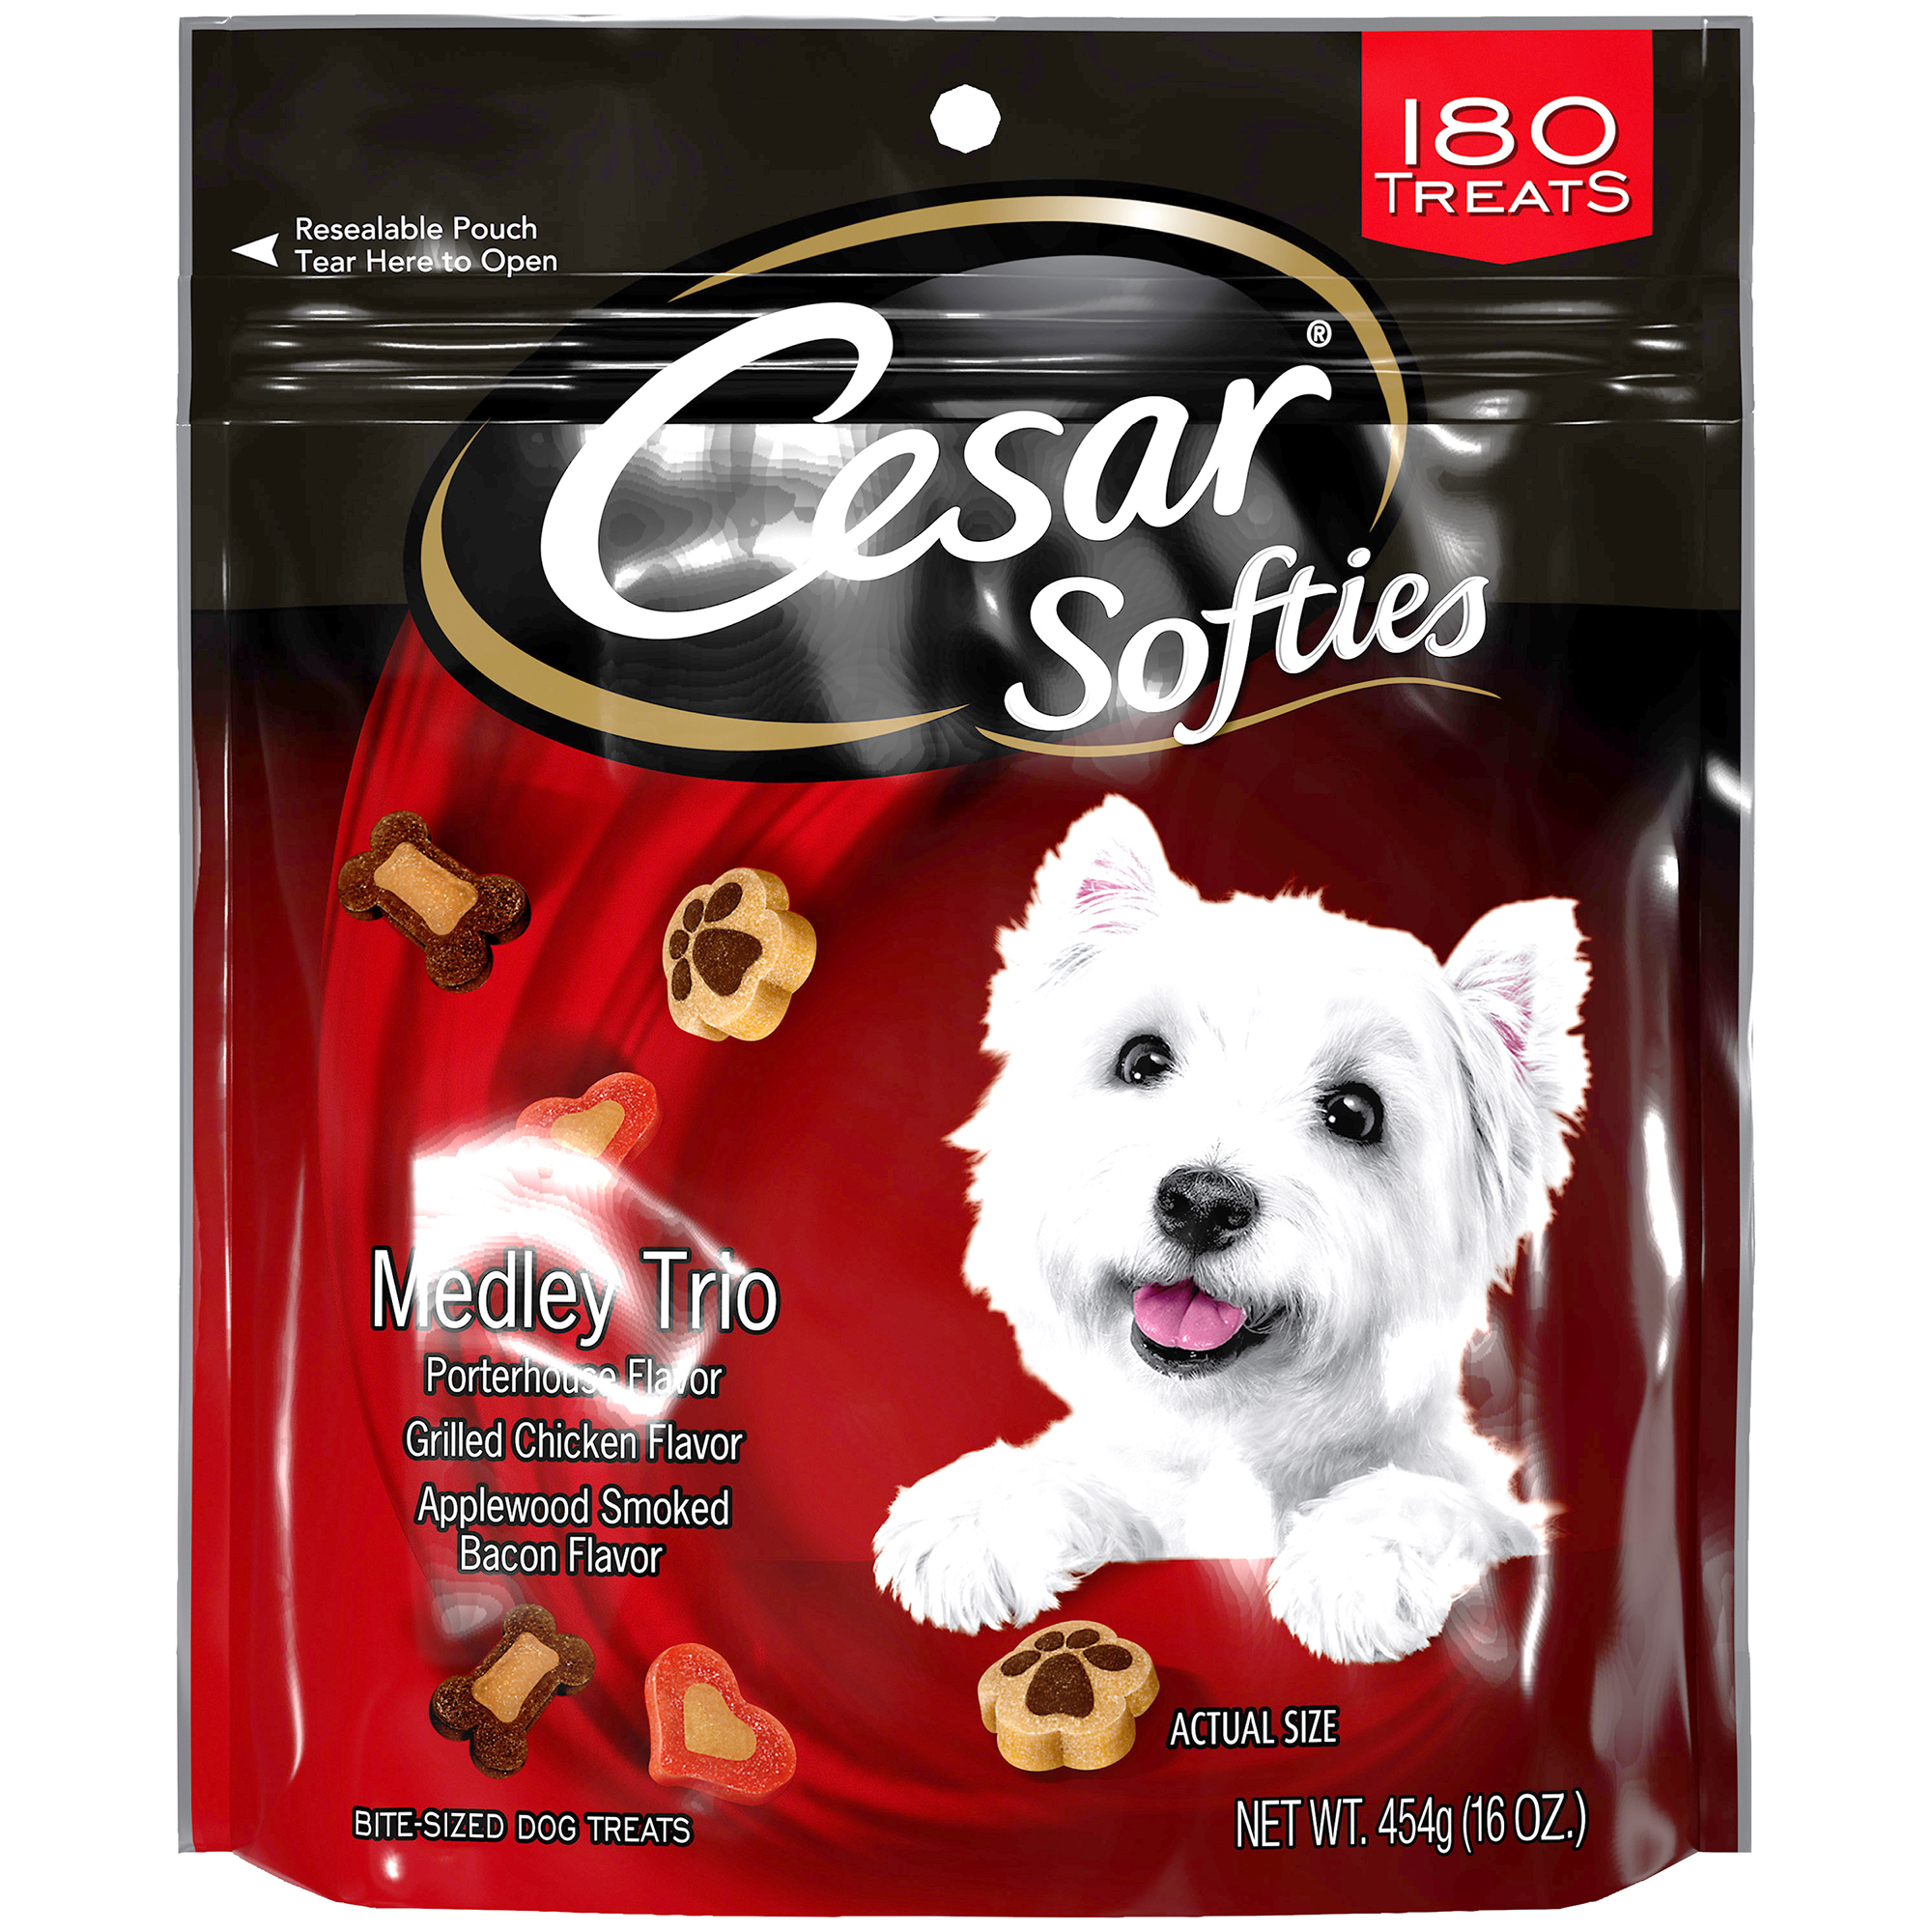 Click here to buy CESAR SOFTIES Medley Trio Dog Treats 16 oz. by Mars Petcare.